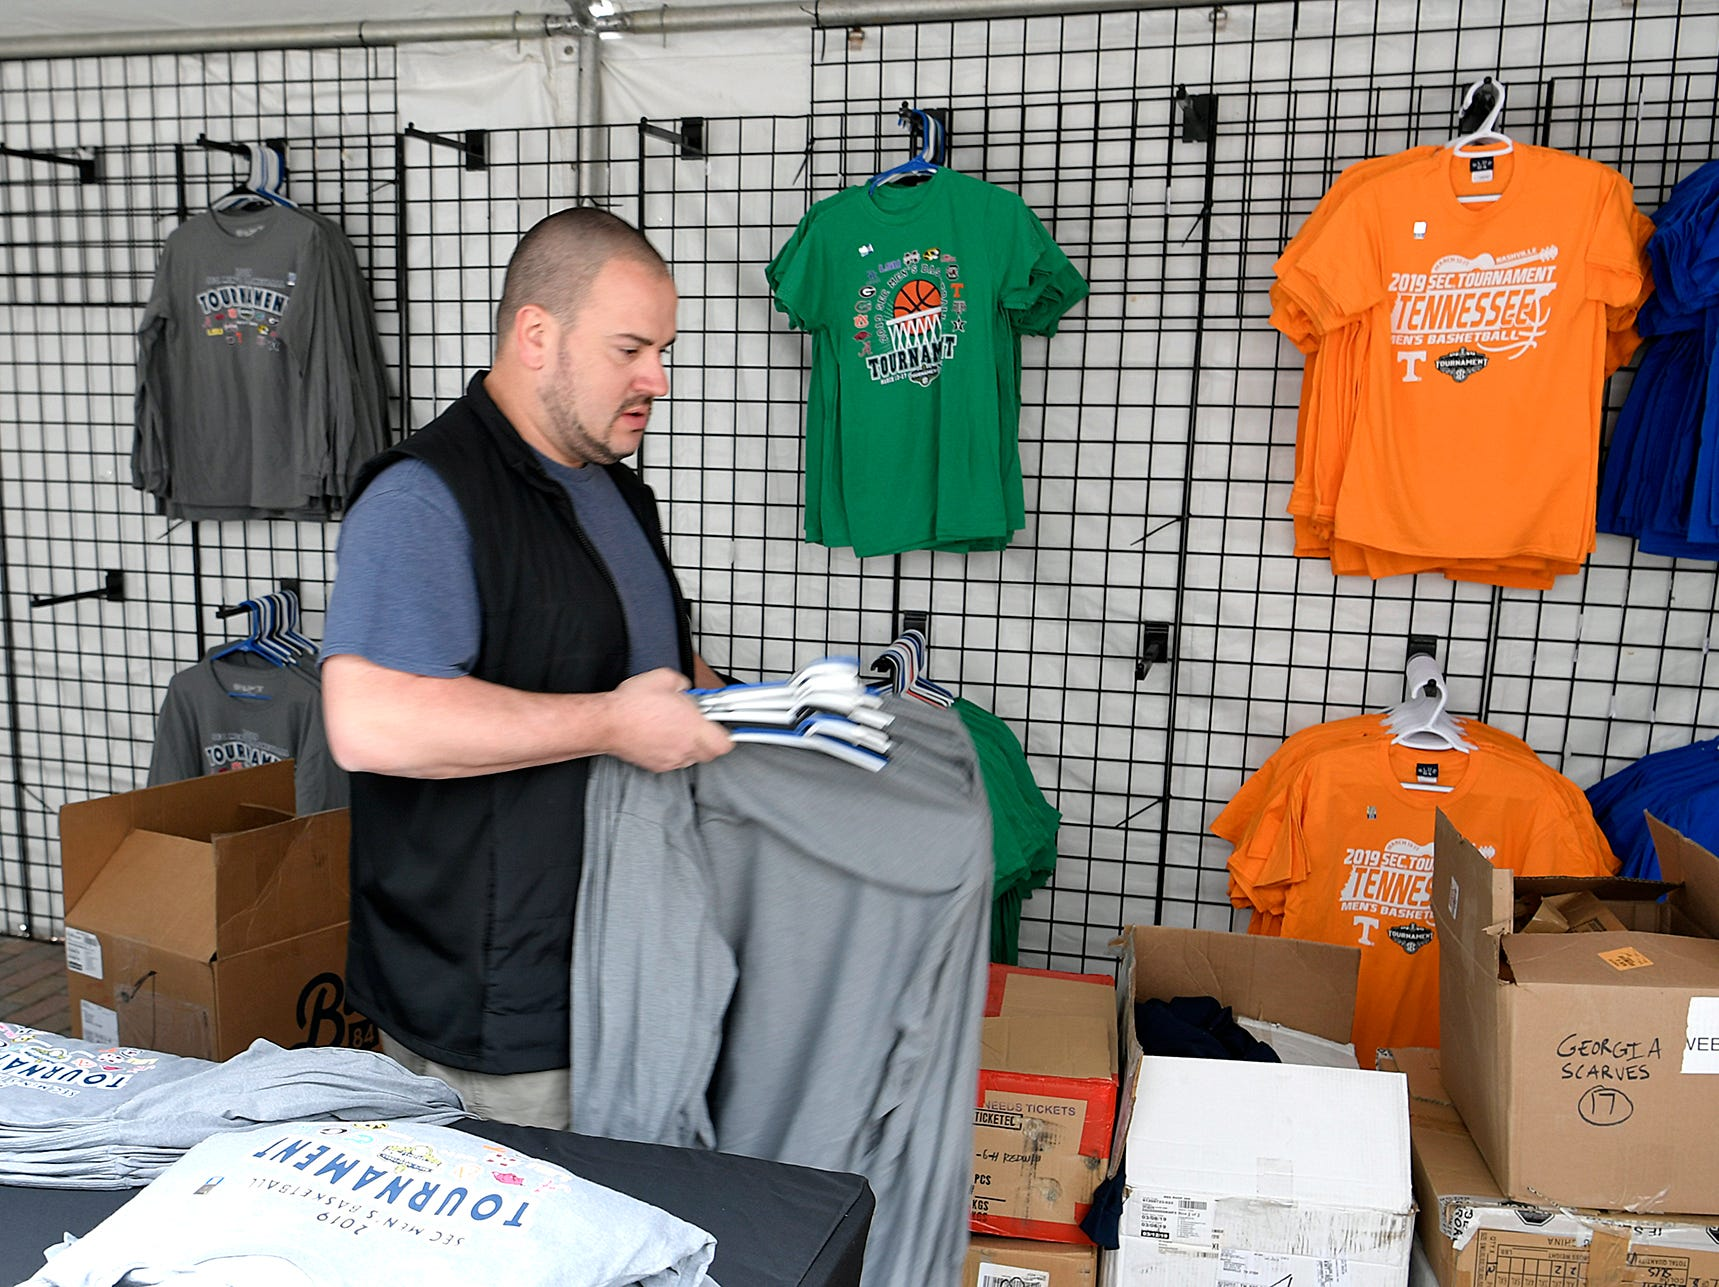 Lee Petty sets up a SEC Men's Basketball Tournament merchandise tent in downtown Nashville on Wednesday, March 13, 2019.